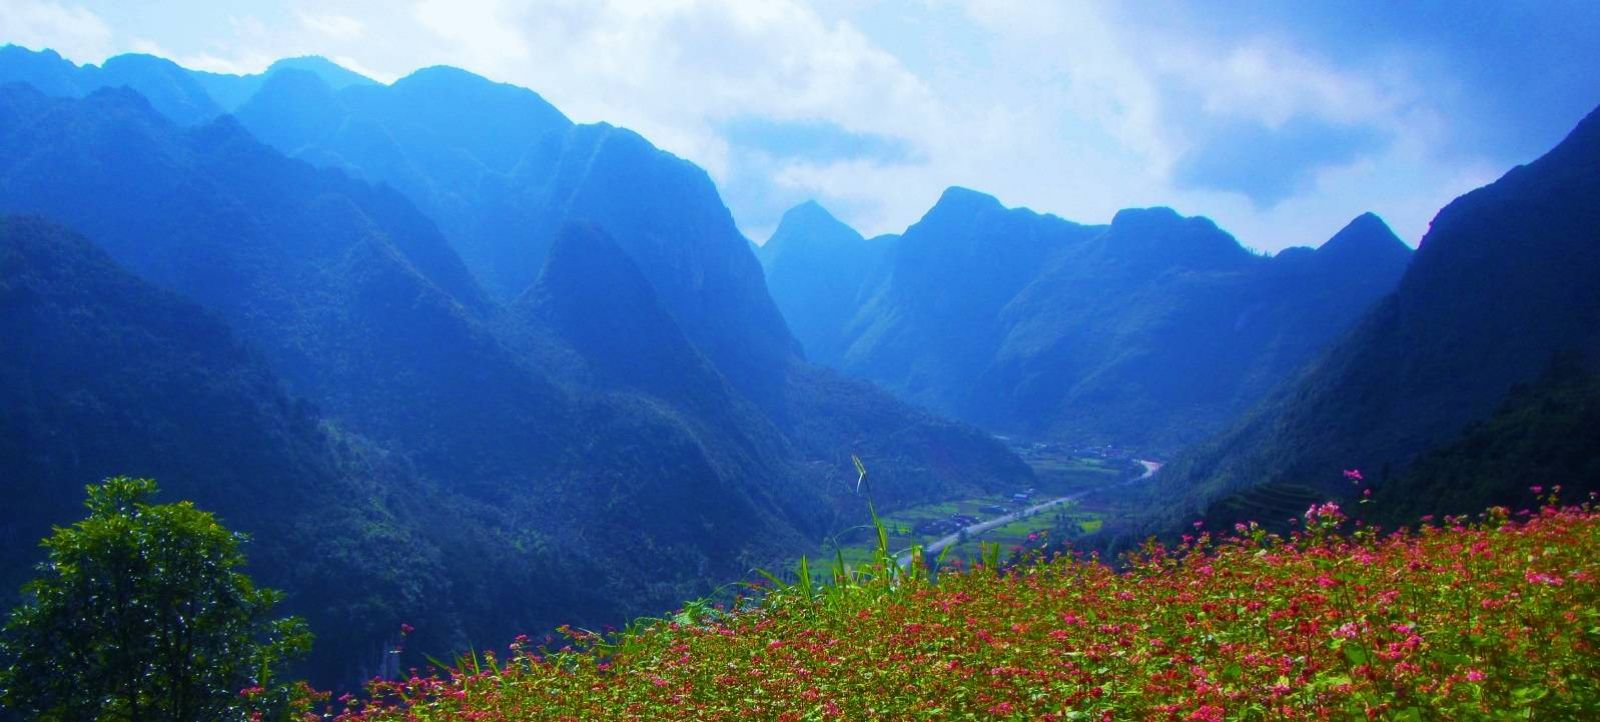 Enjoy the beautiful scenery in North East Vietnam